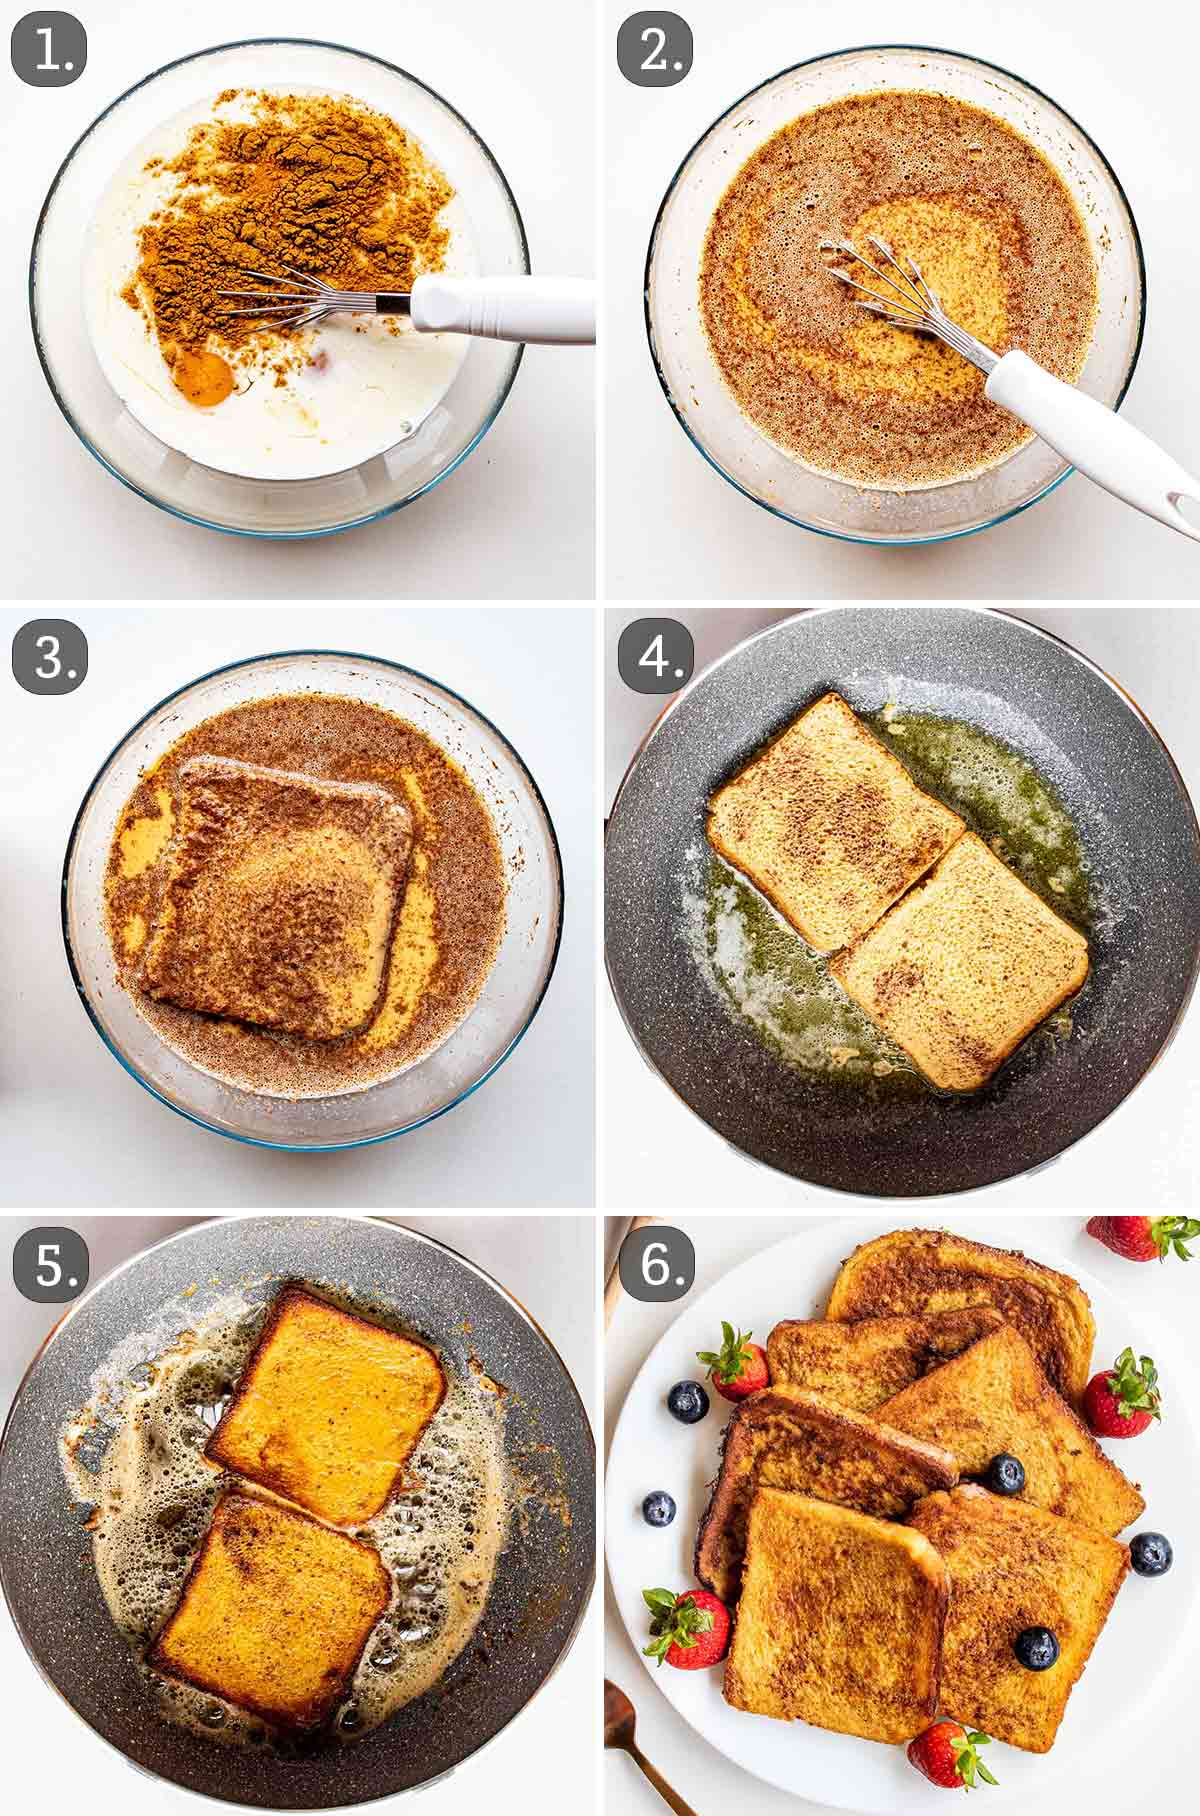 detailed process shots, showing how to make french toast.